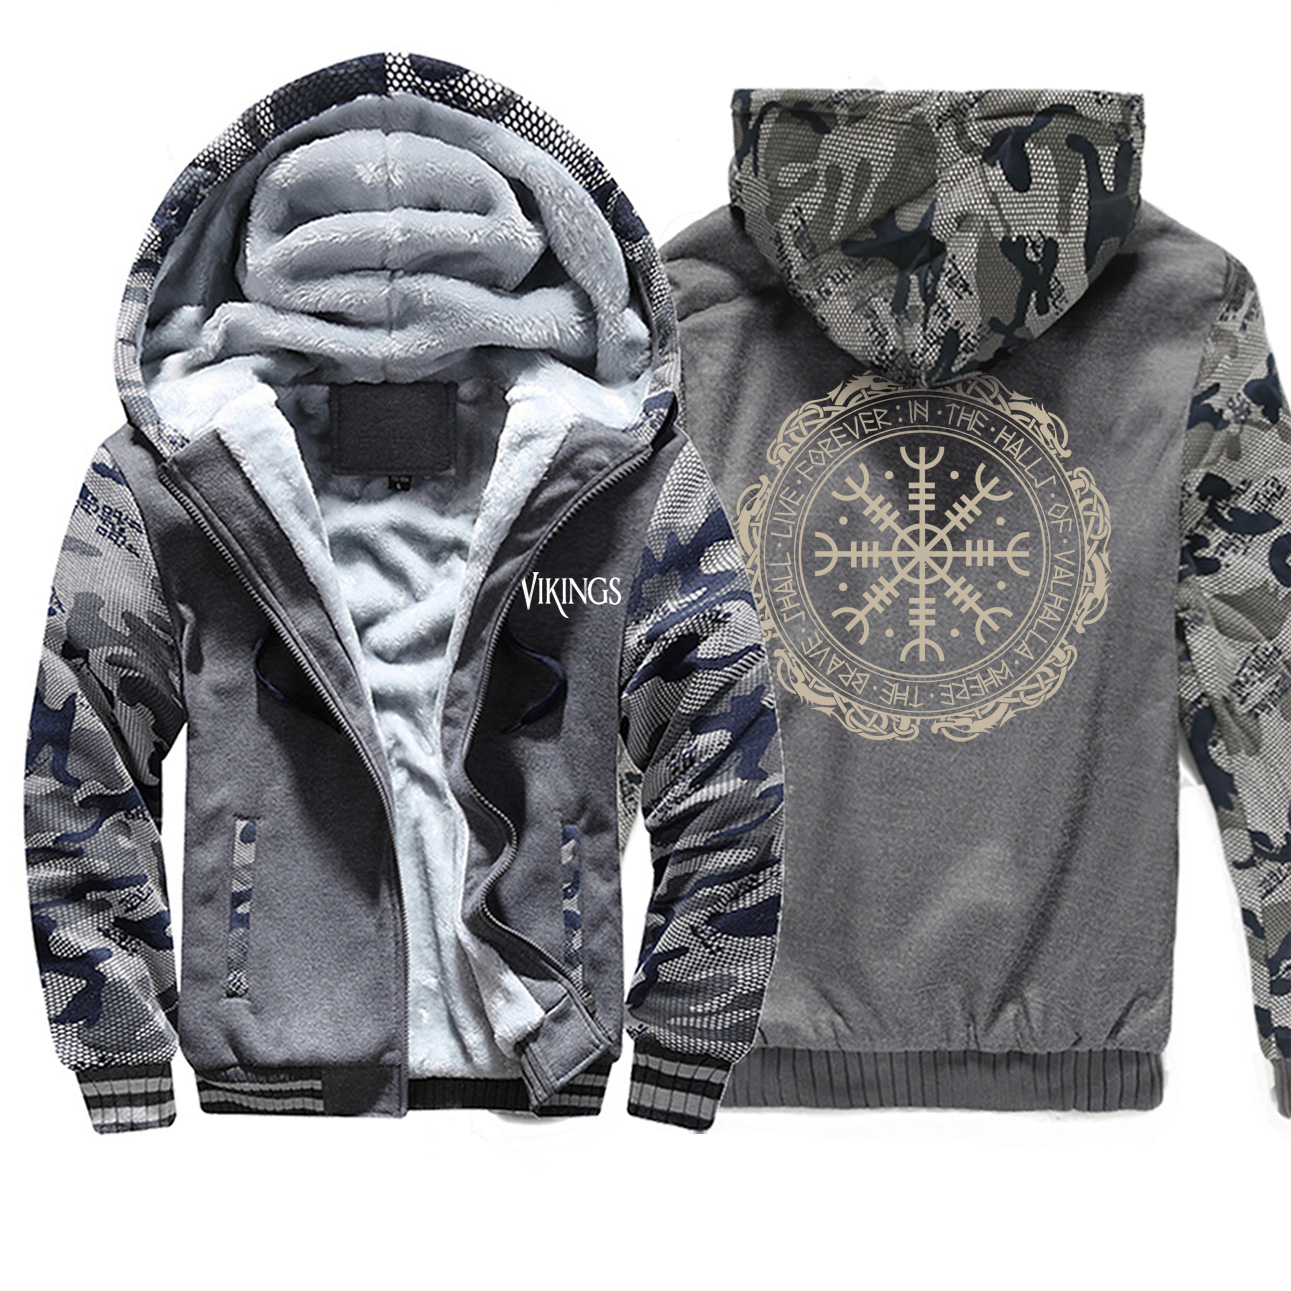 2019 Winter Thick Mens Hoodies Viking Printing Male Jacket Hip Hop Brand Outwear Hot Sale Camouflage Sleeve Men's Jacket Casual 2